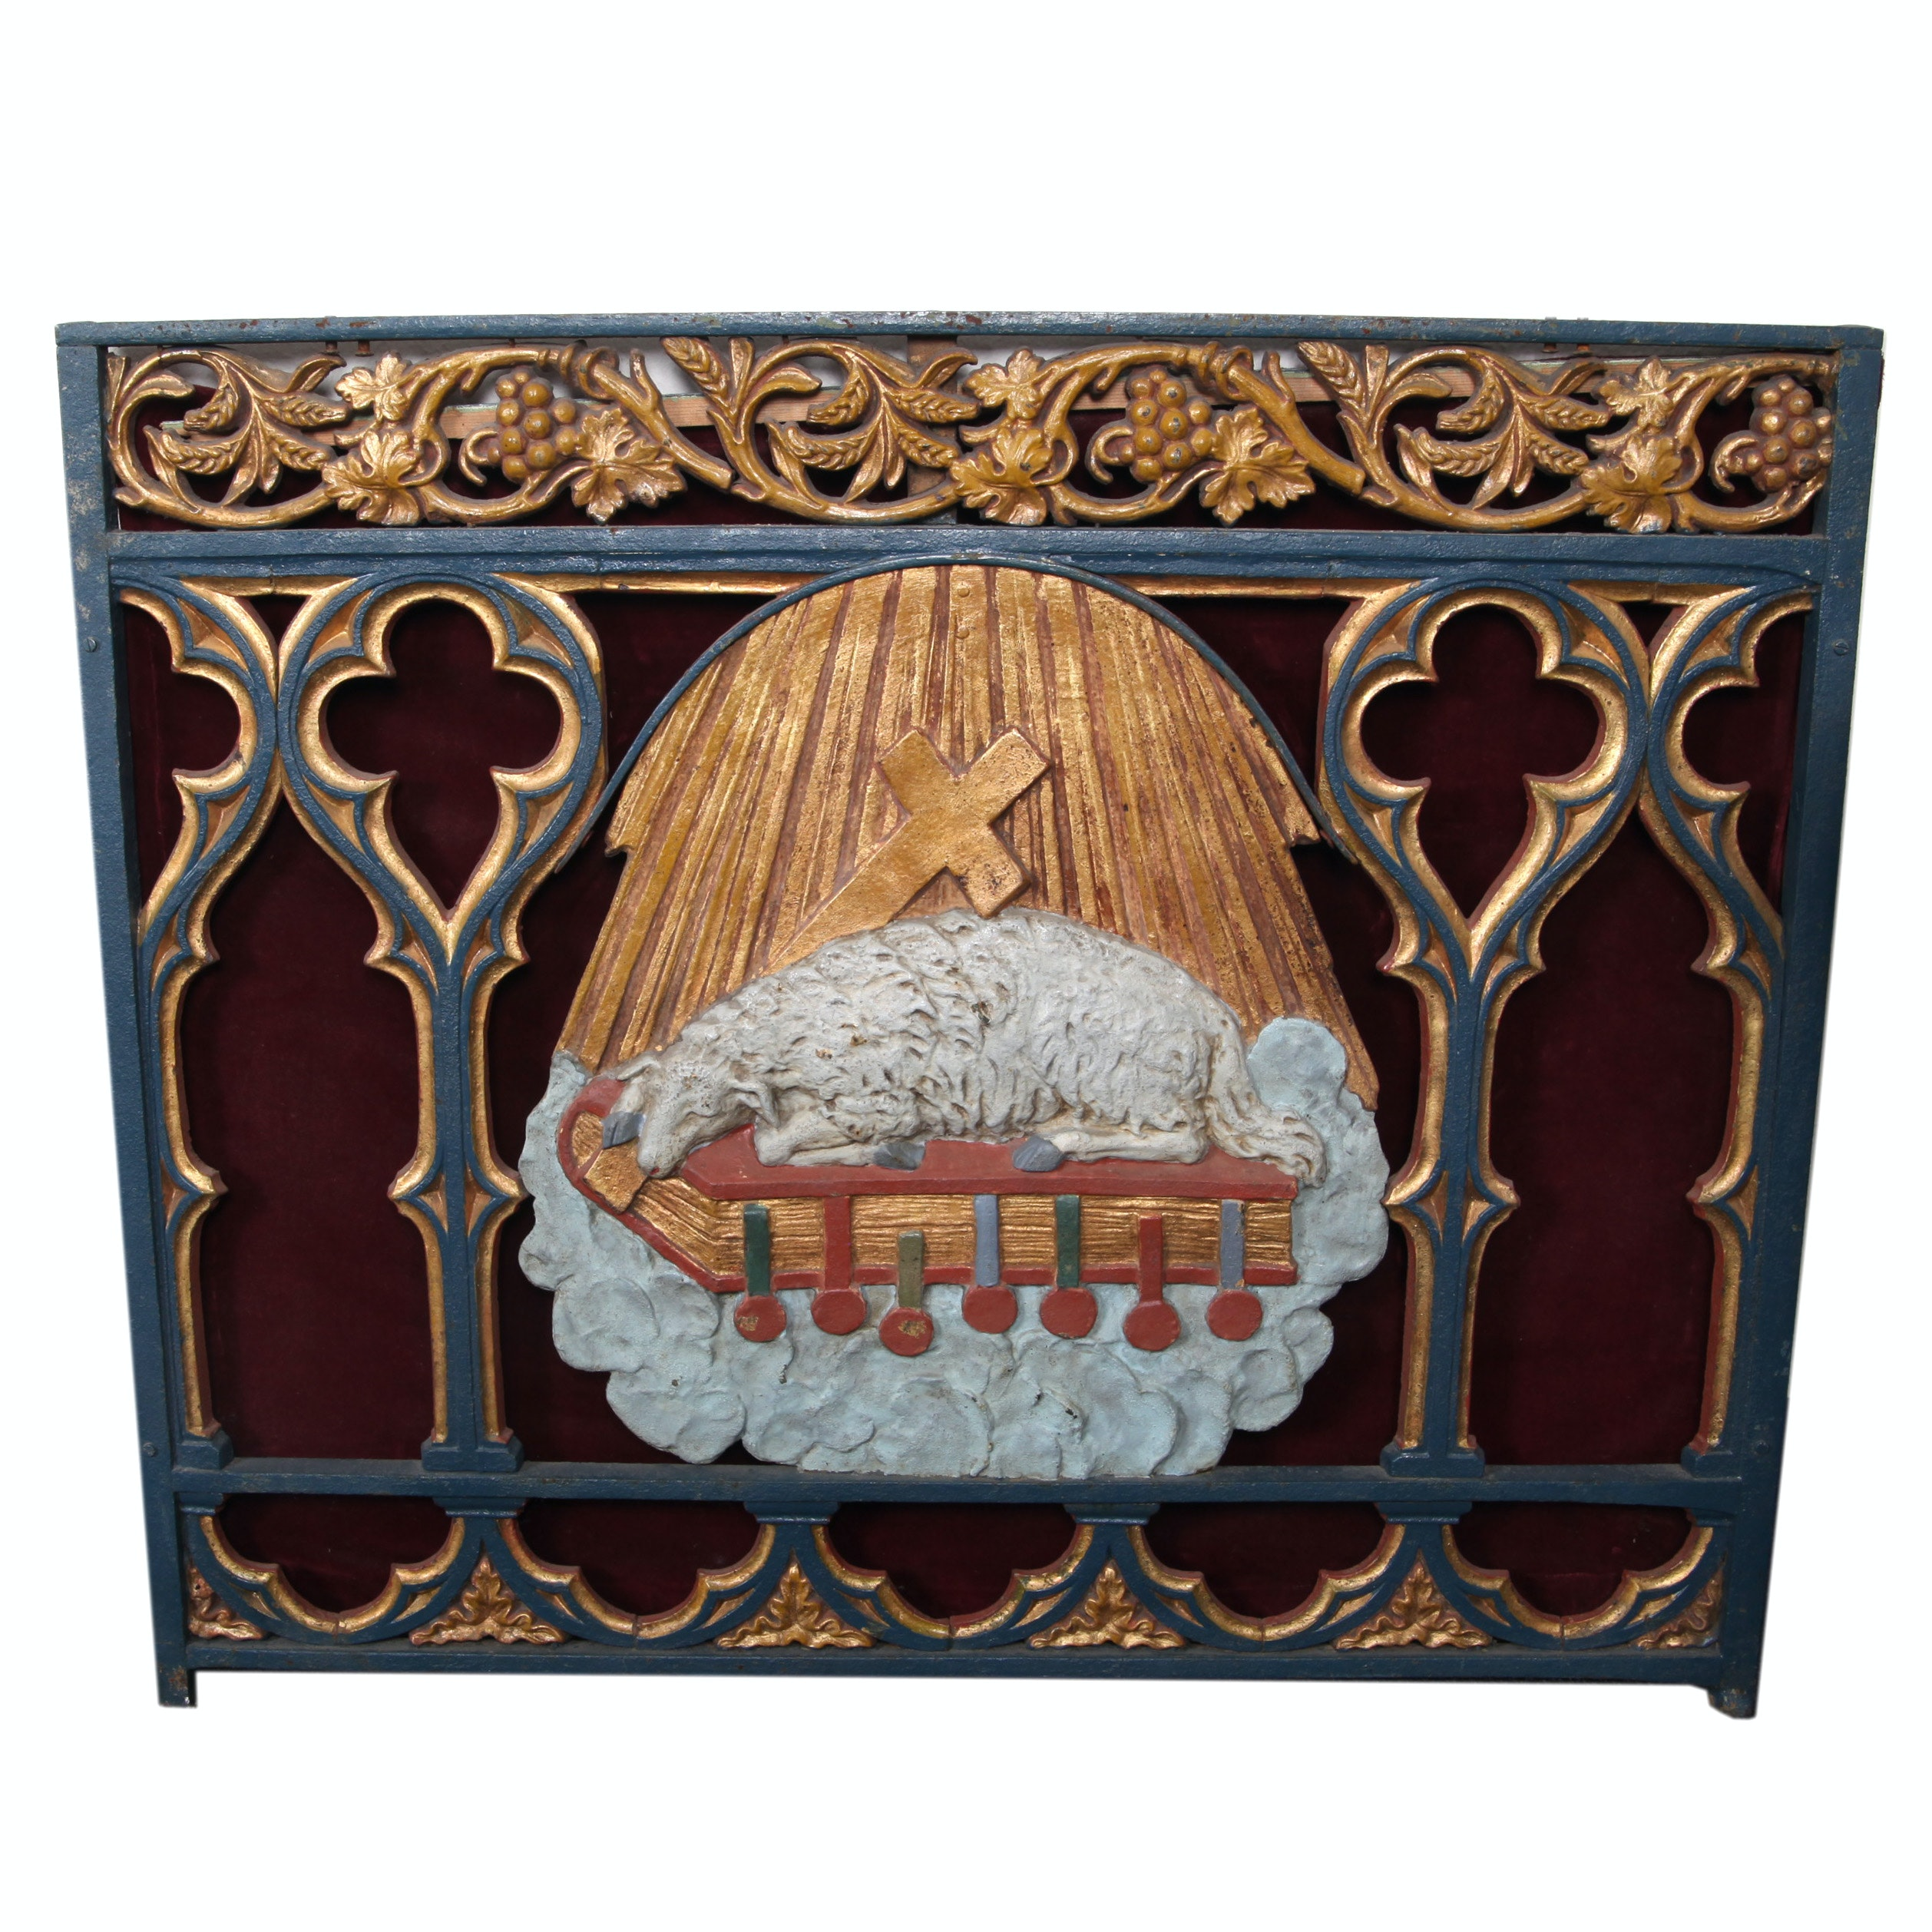 Painted Cast Metal Christian Motif Panel With Velvet Backing